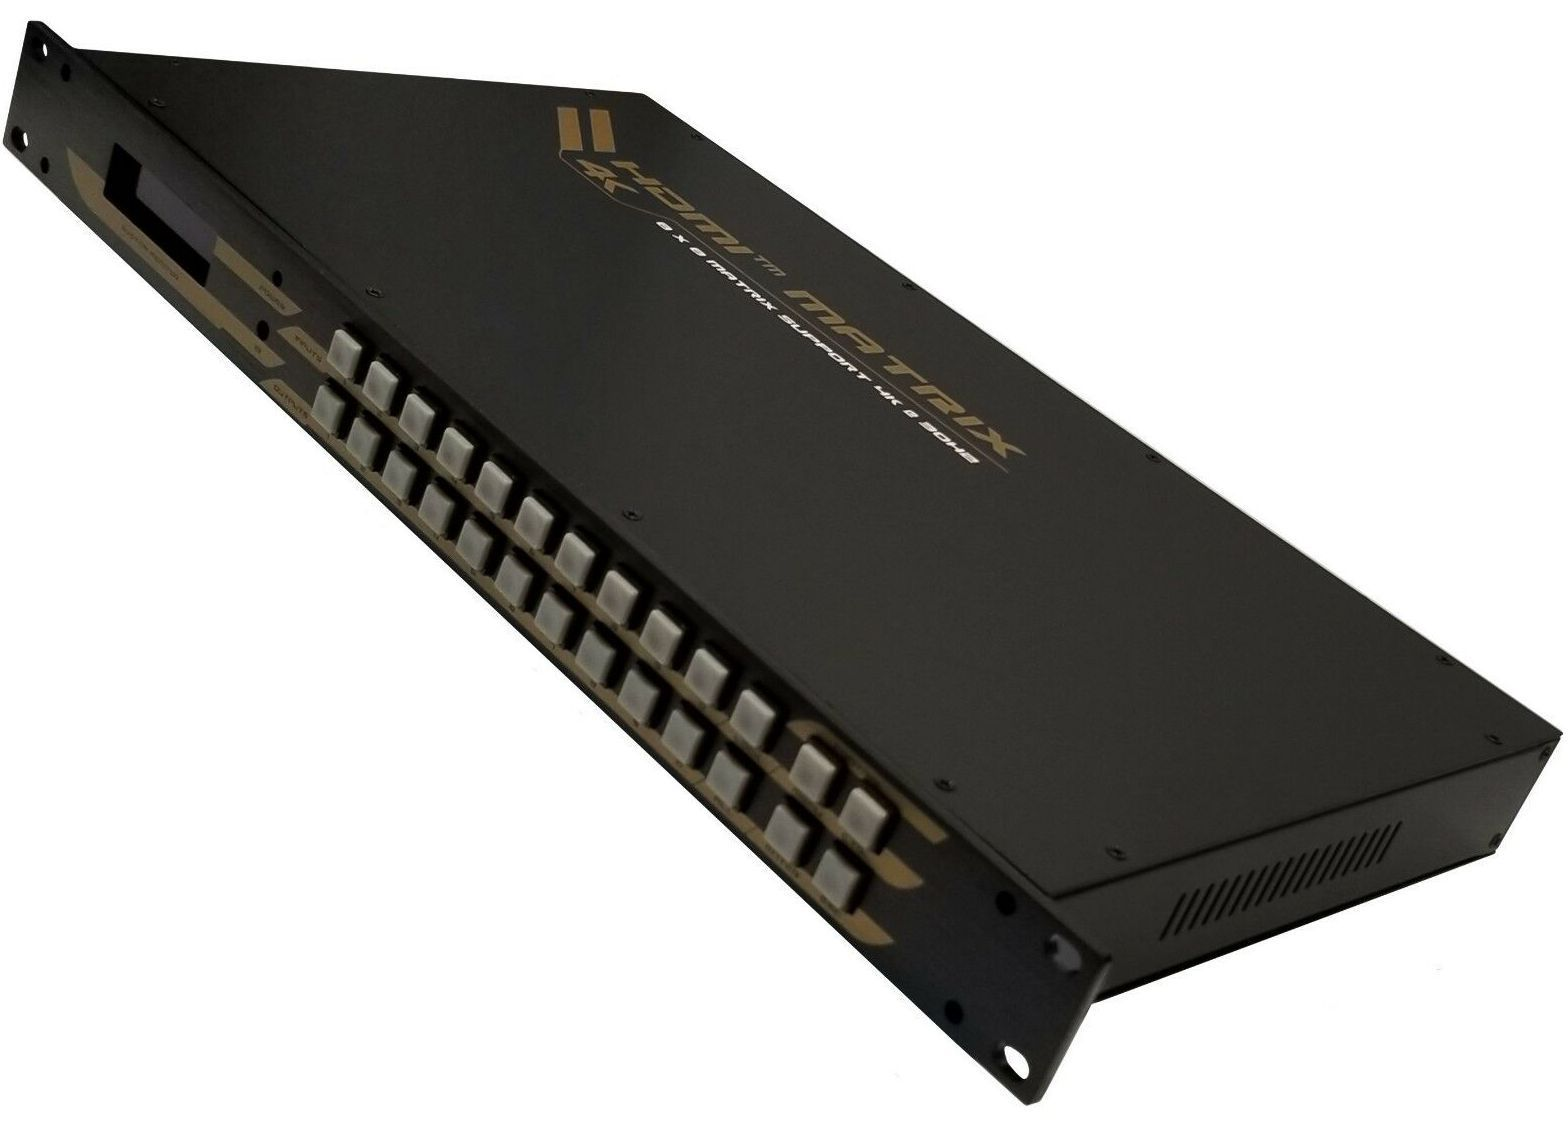 4K 8-8 HDMI Matrix with Video Wall Function